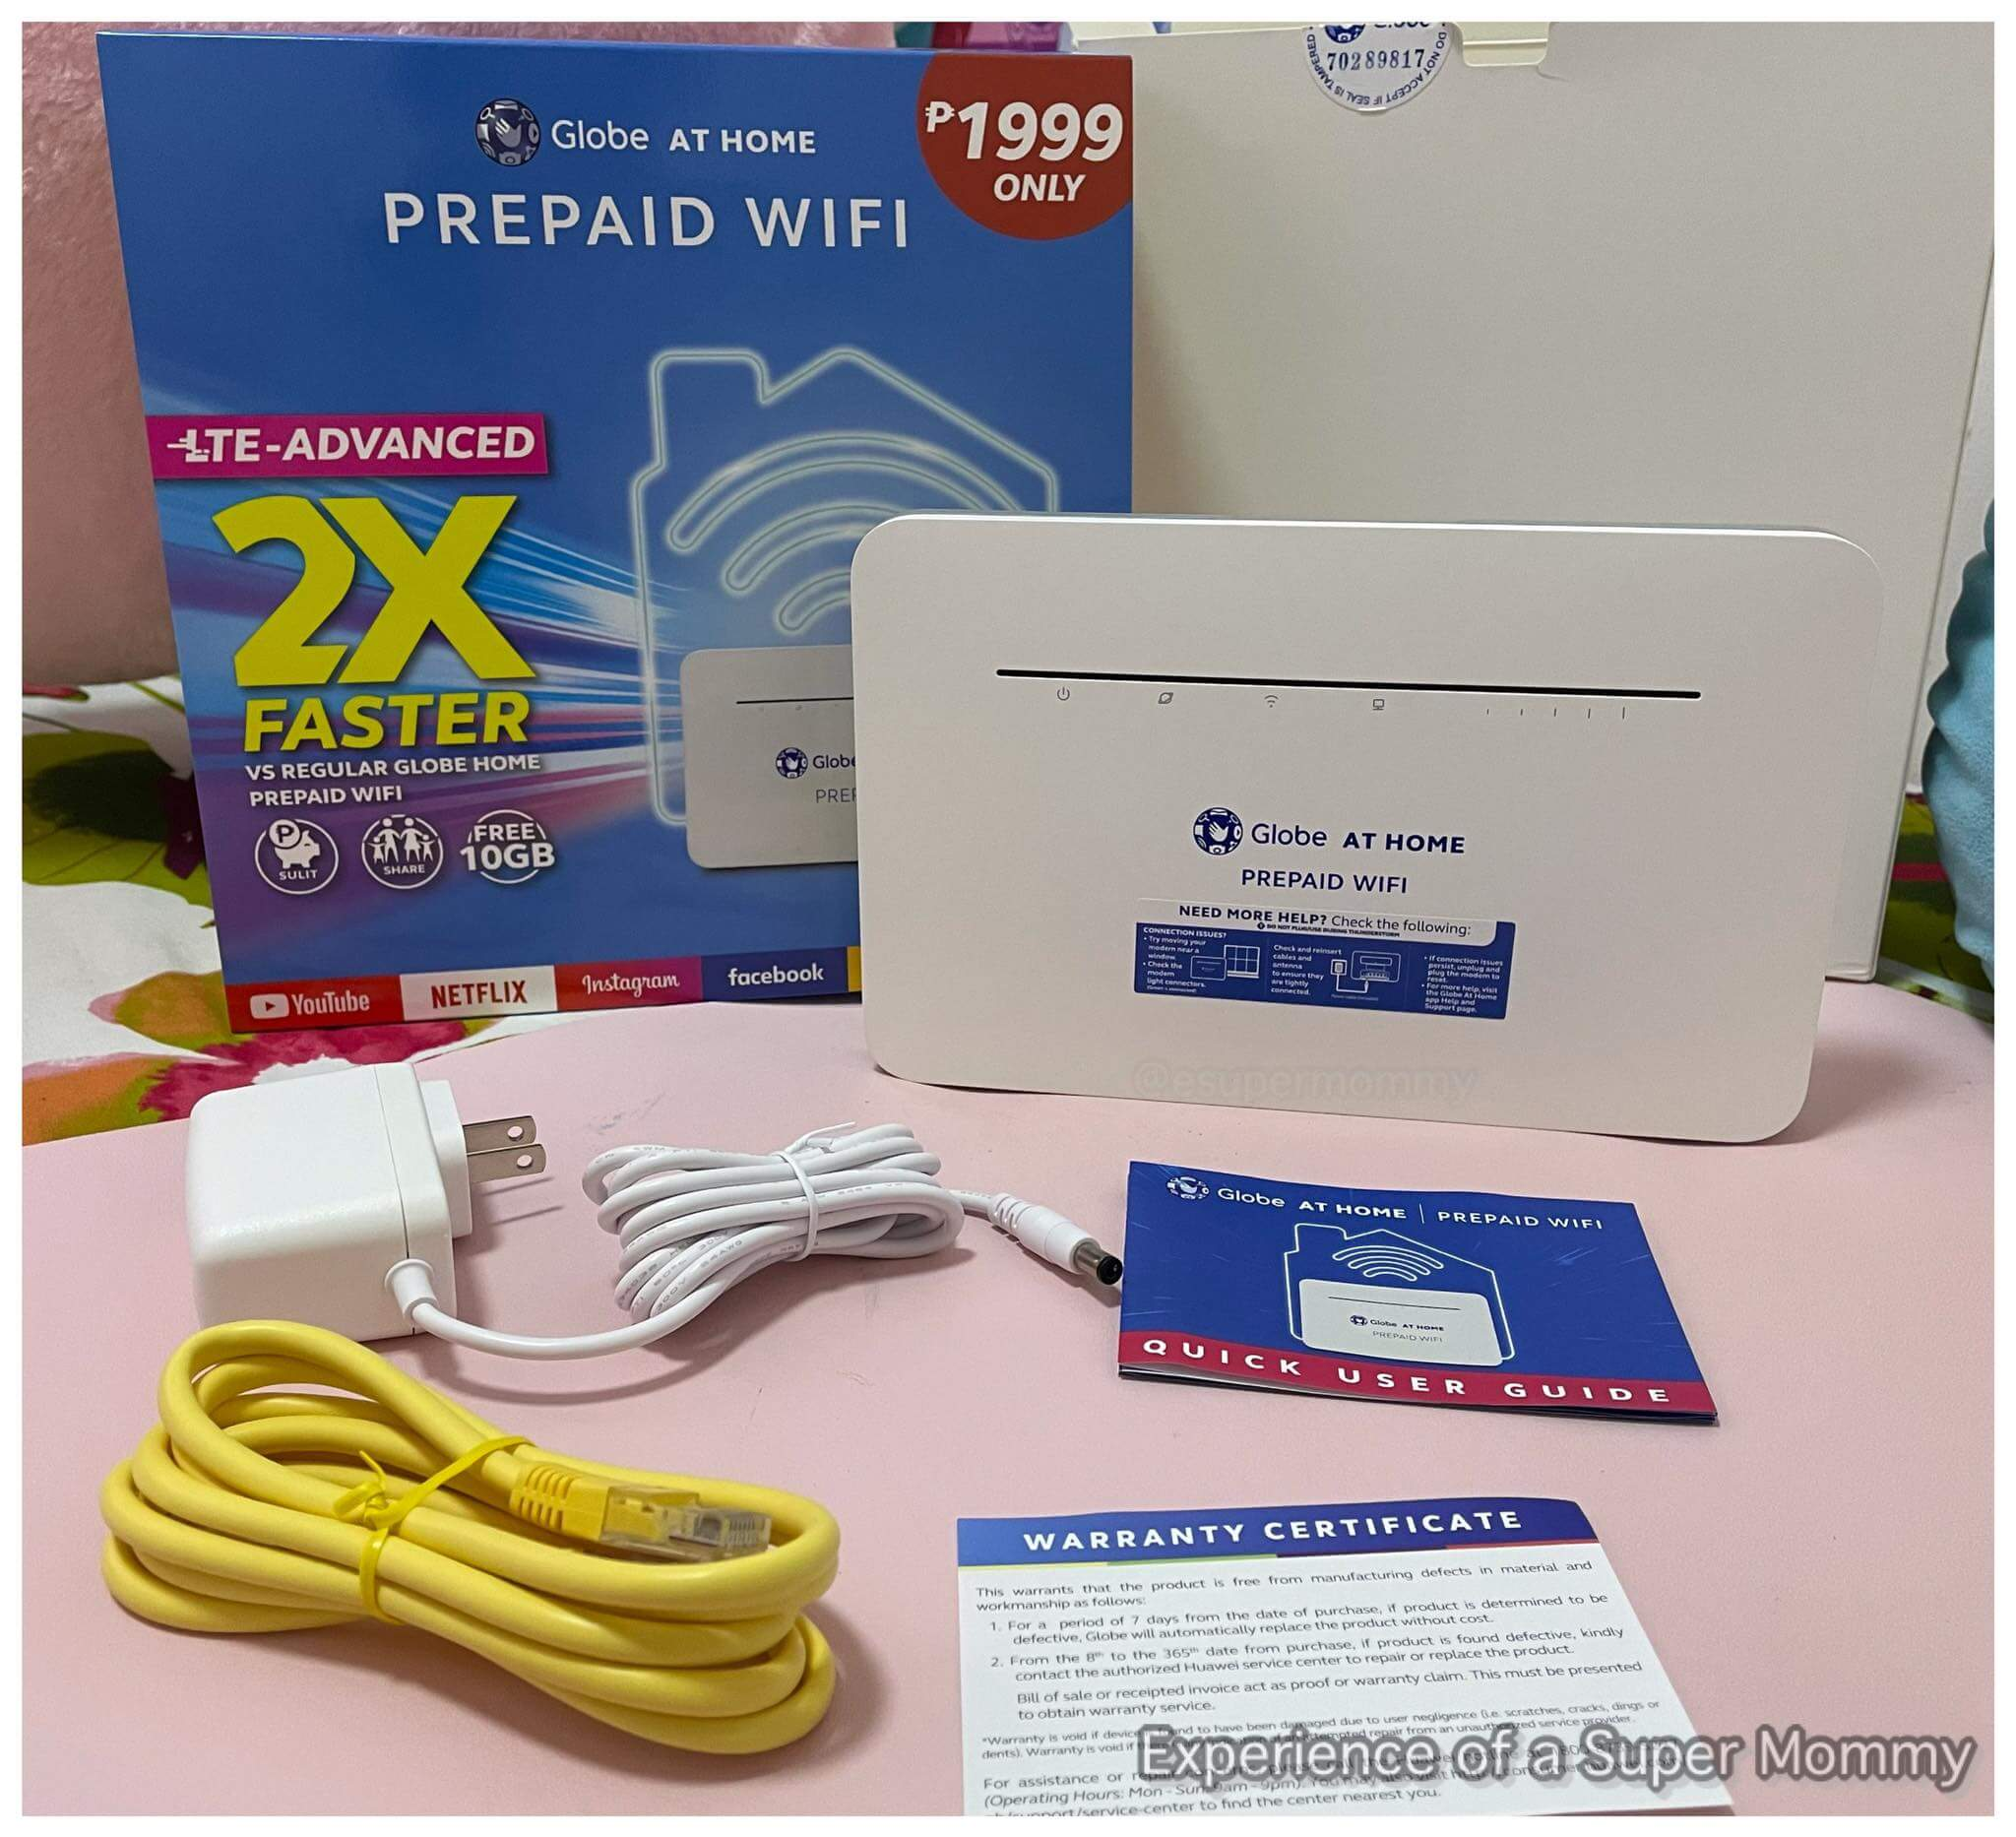 globe at home prepaid wifi unboxing